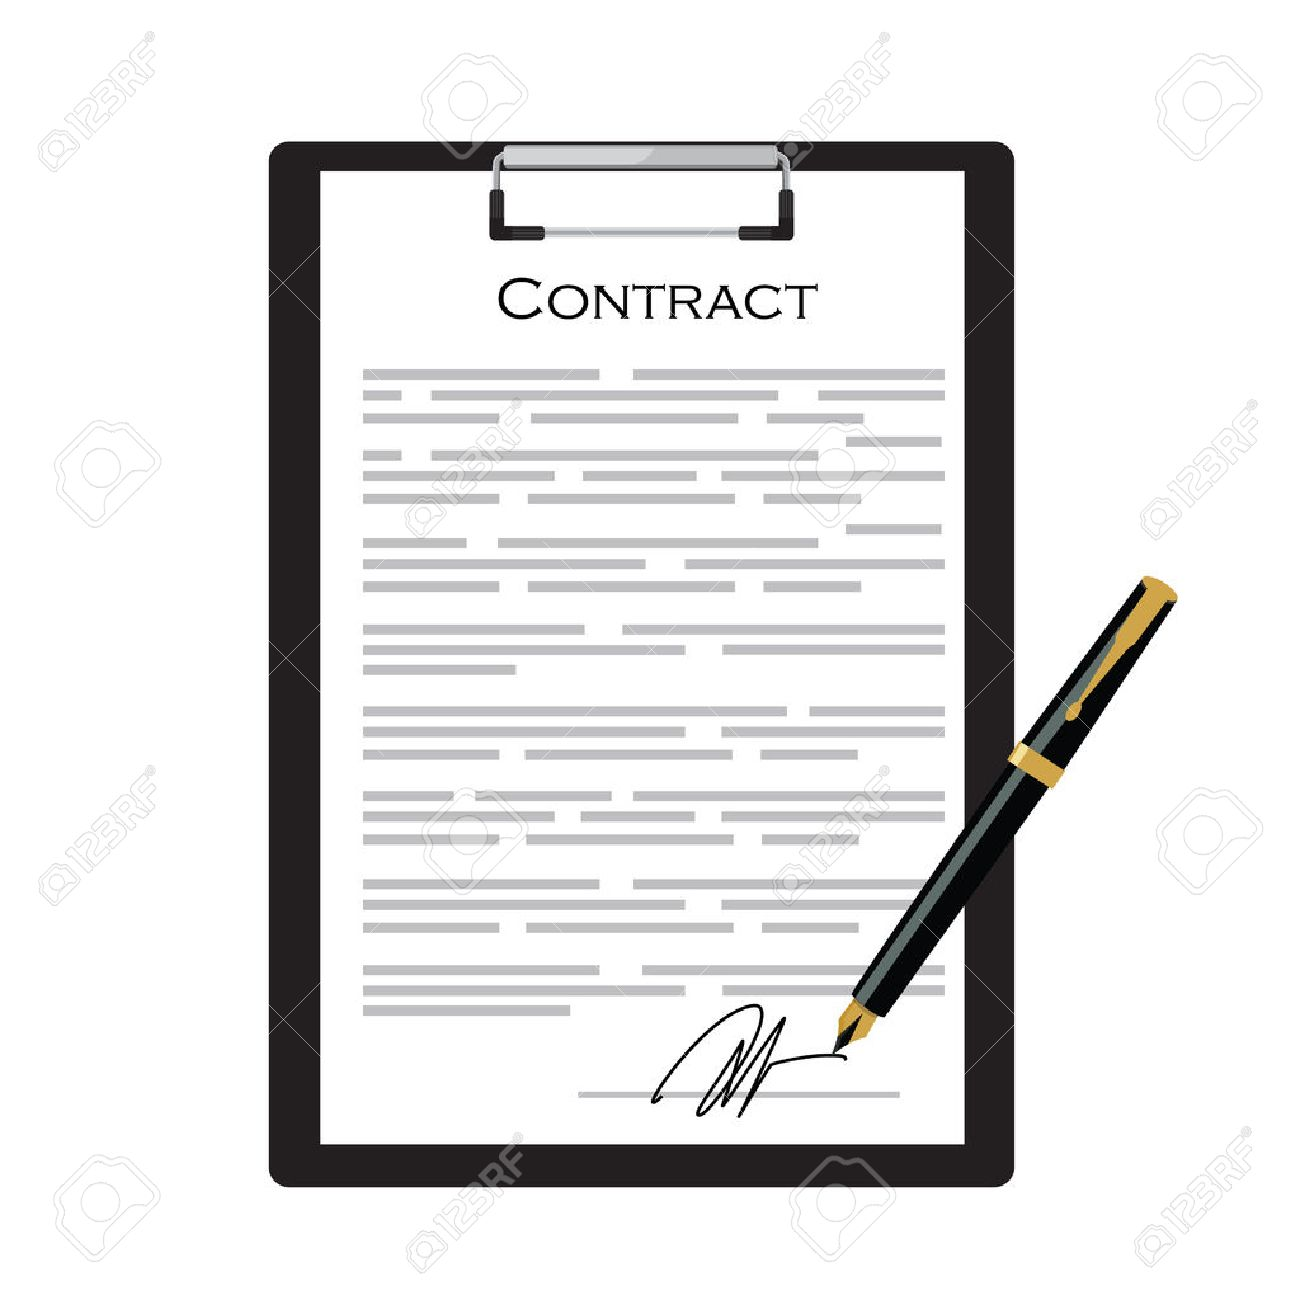 Business Contract With Signature On Black Clipboard With Golden Pen Vector  Illustration. Contraction Icon Stock  Free Business Contract